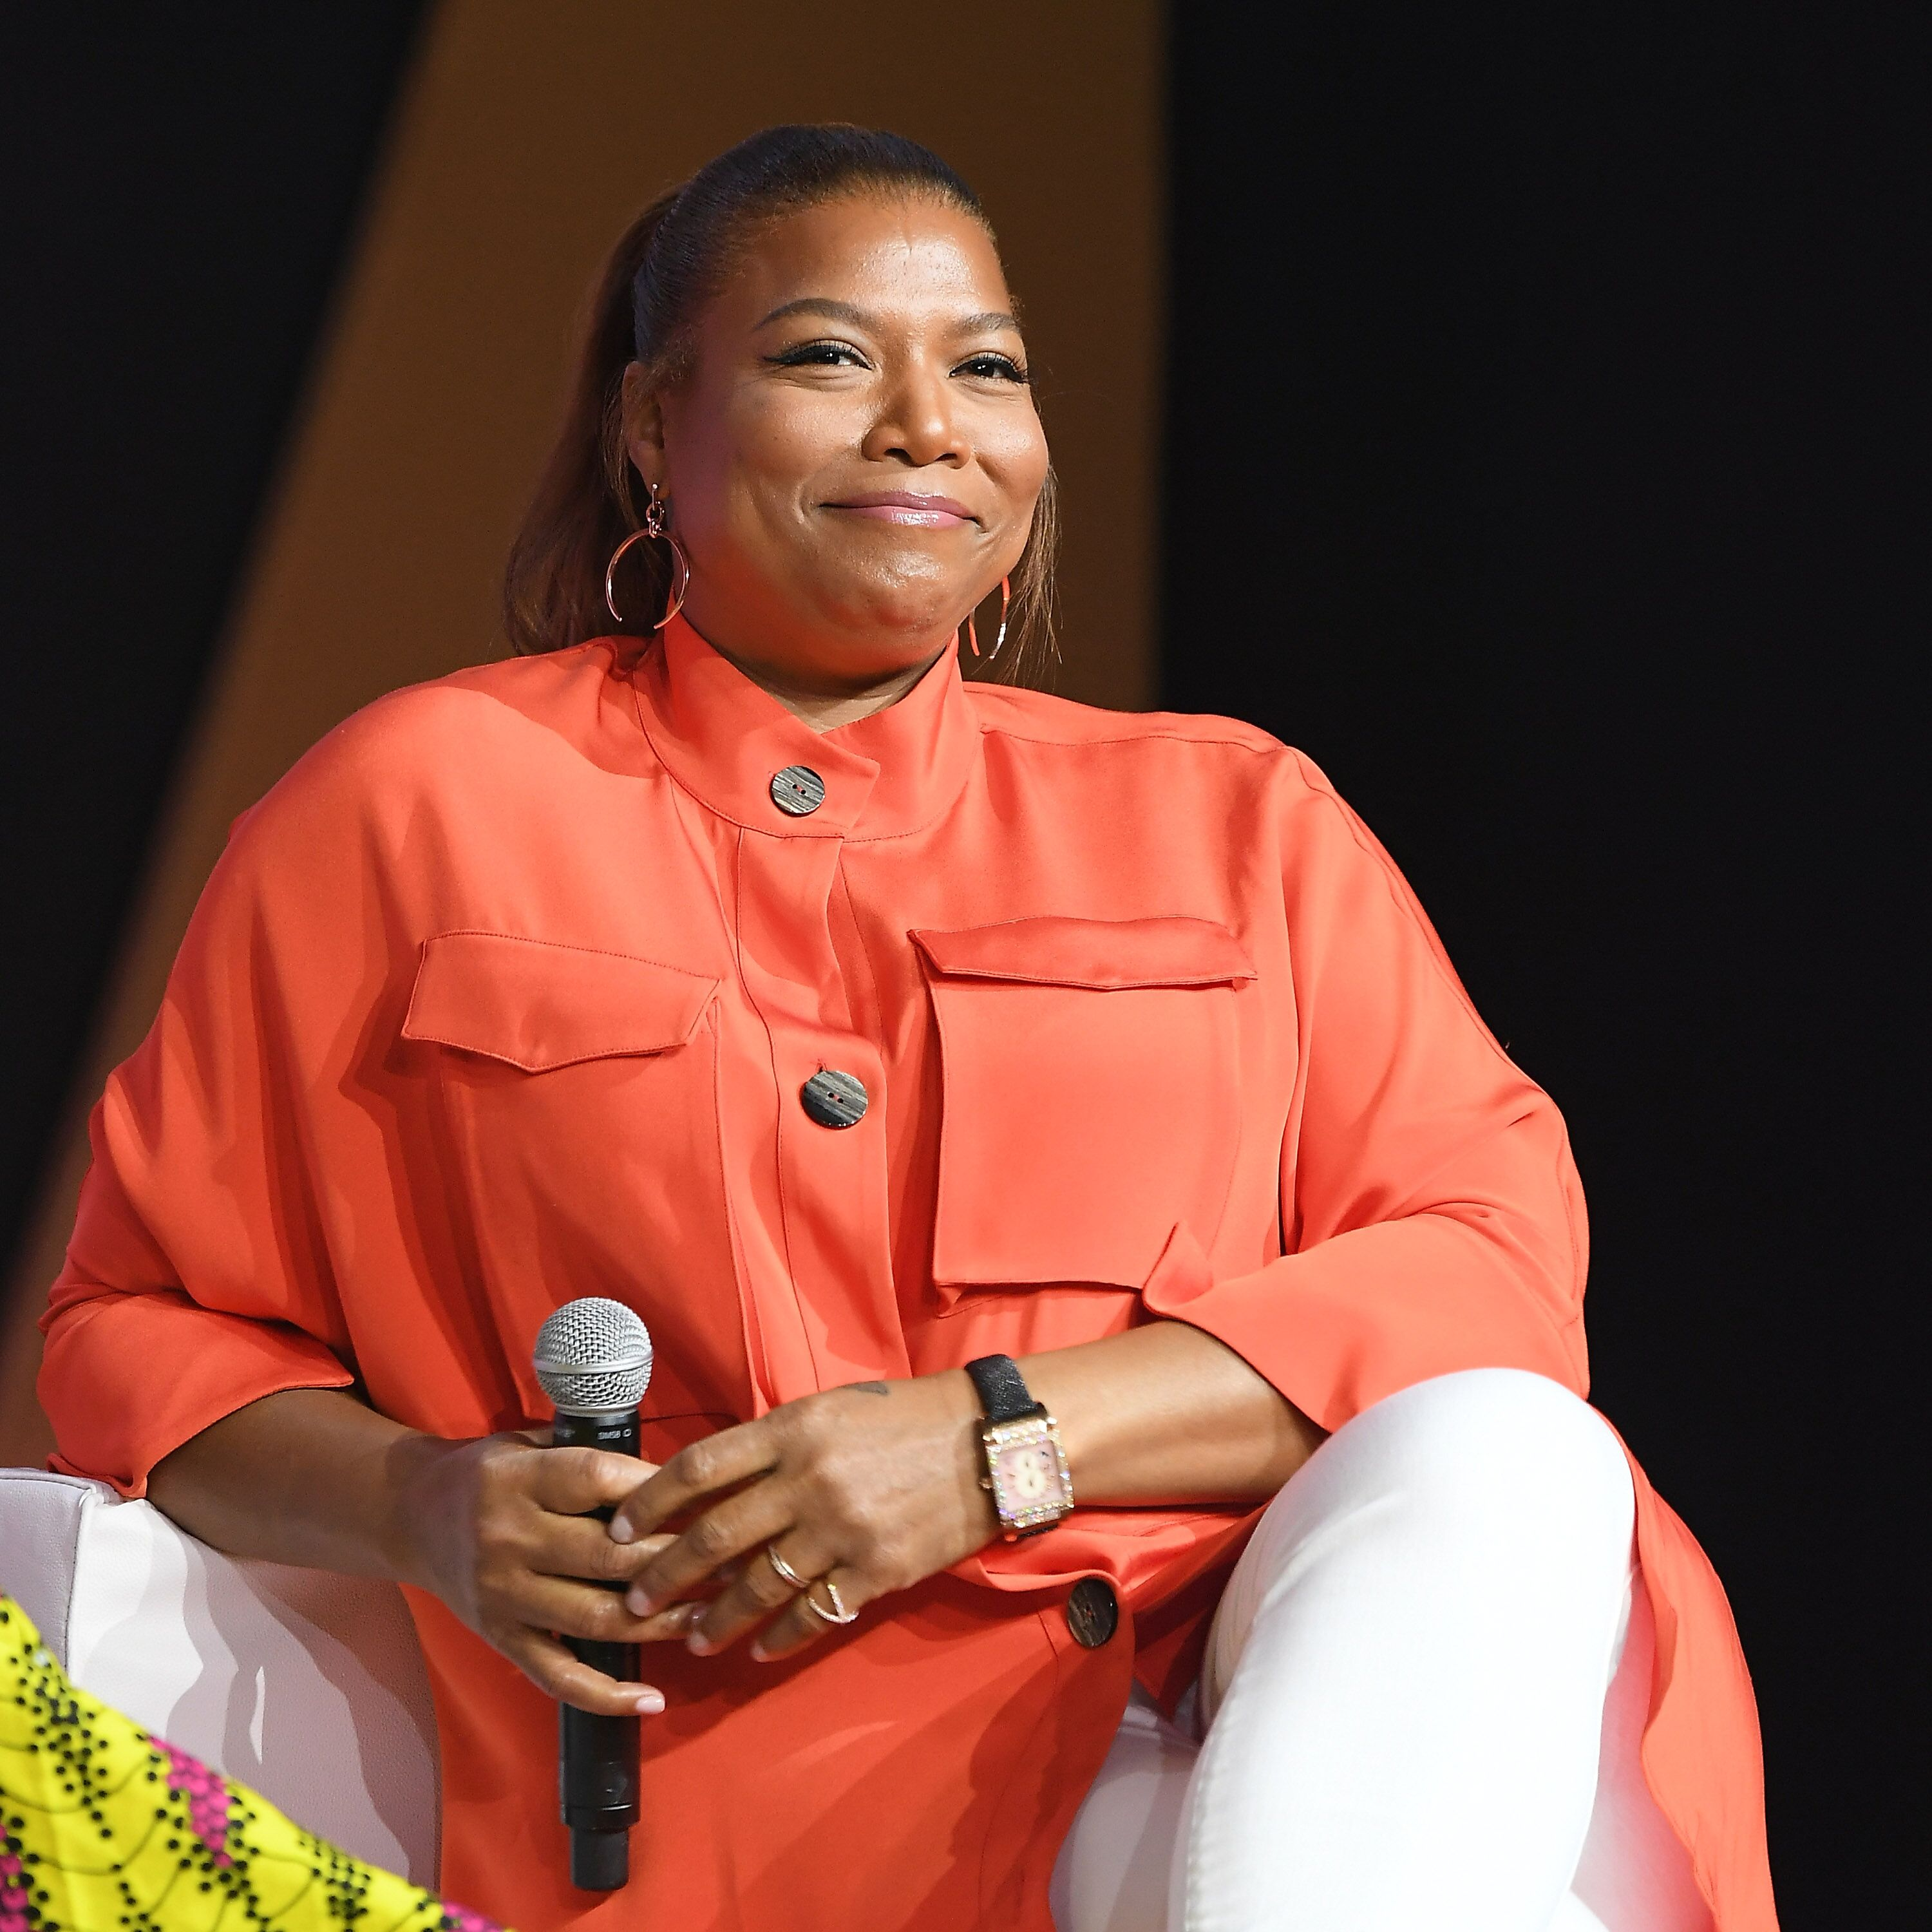 Queen Latifah speaks onstage during the 2018 Essence Festival presented by Coca-Cola at Ernest N. Morial Convention Center on July 6, 2018   Photo: Getty Images